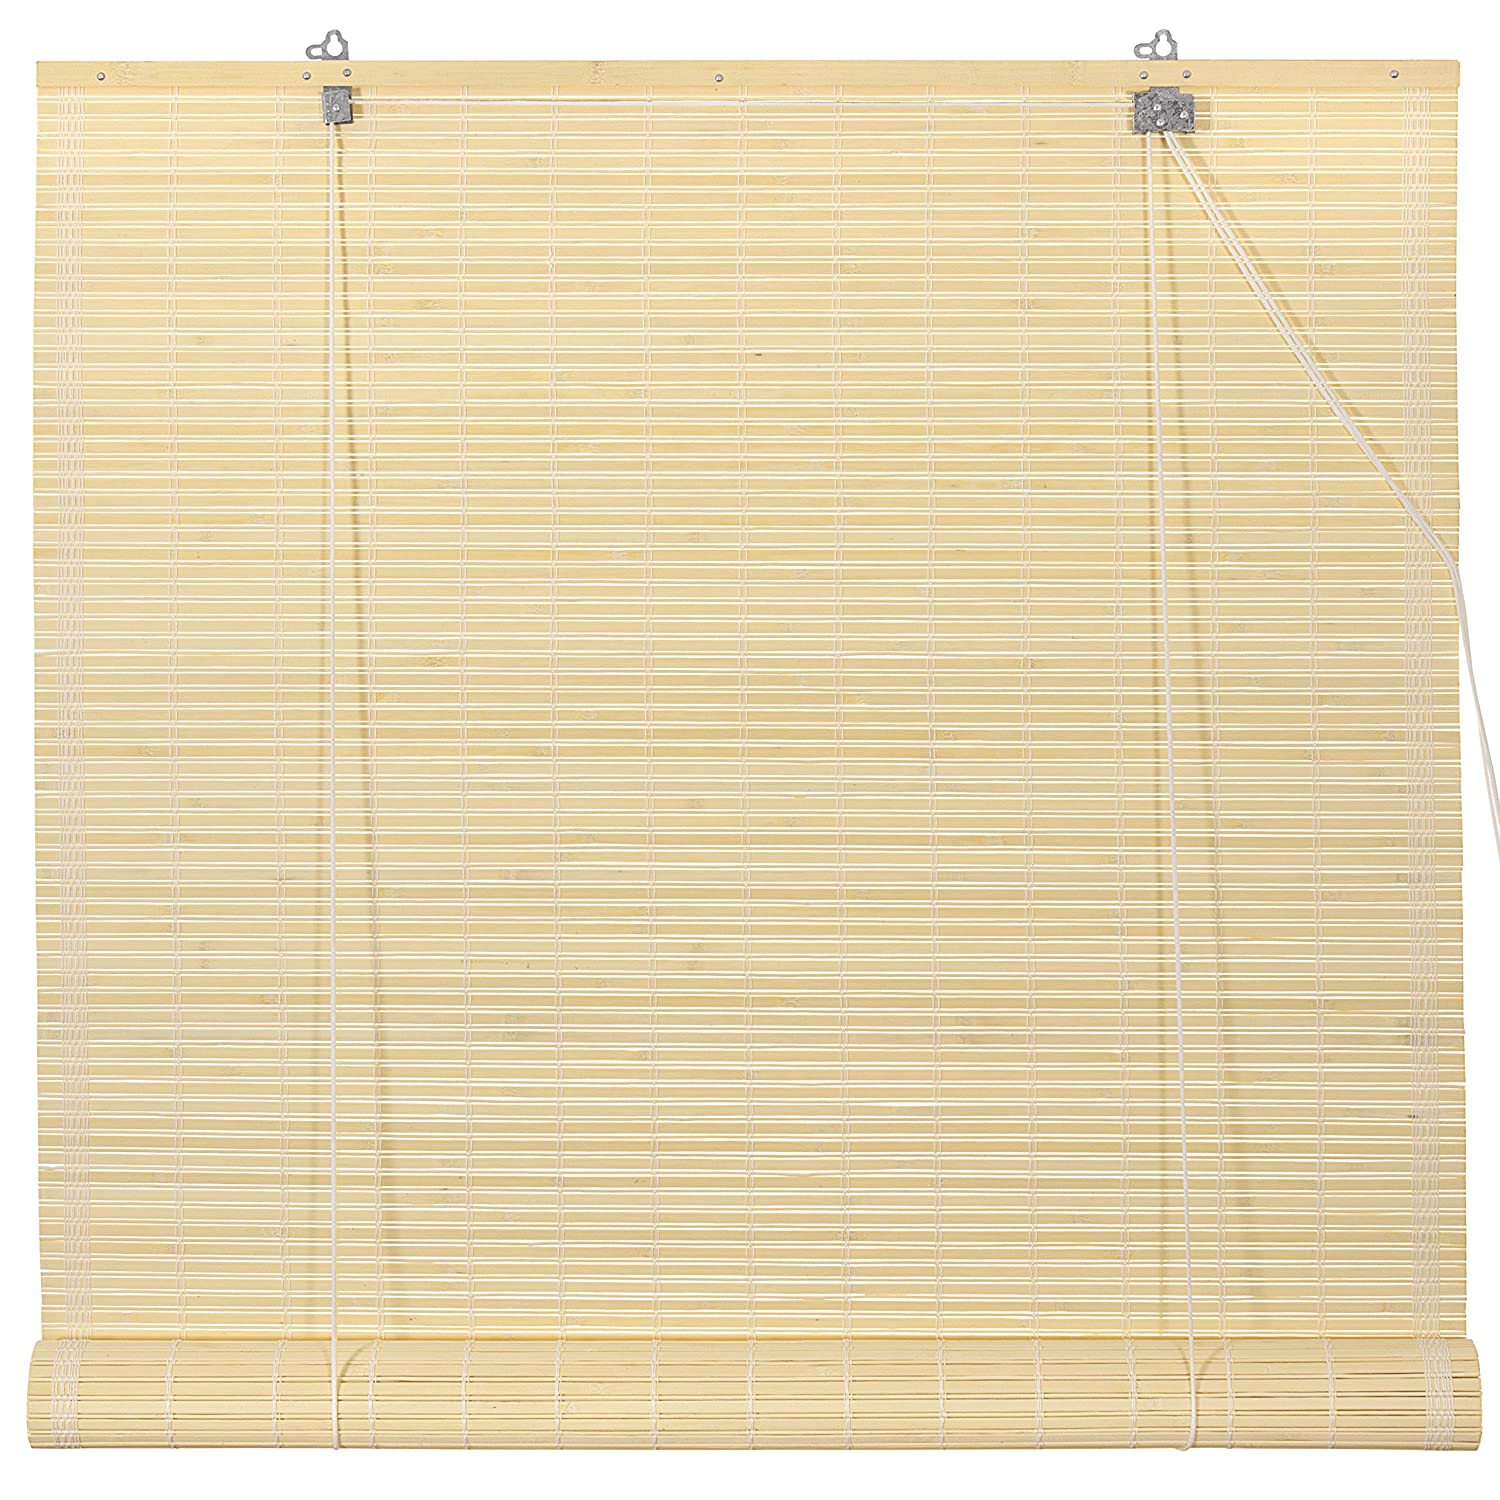 Oriental Furniture WT-YJ1-8B6-24W Burnt Bamboo Roll Up Window Blinds, Natural, 24-Inch Wide